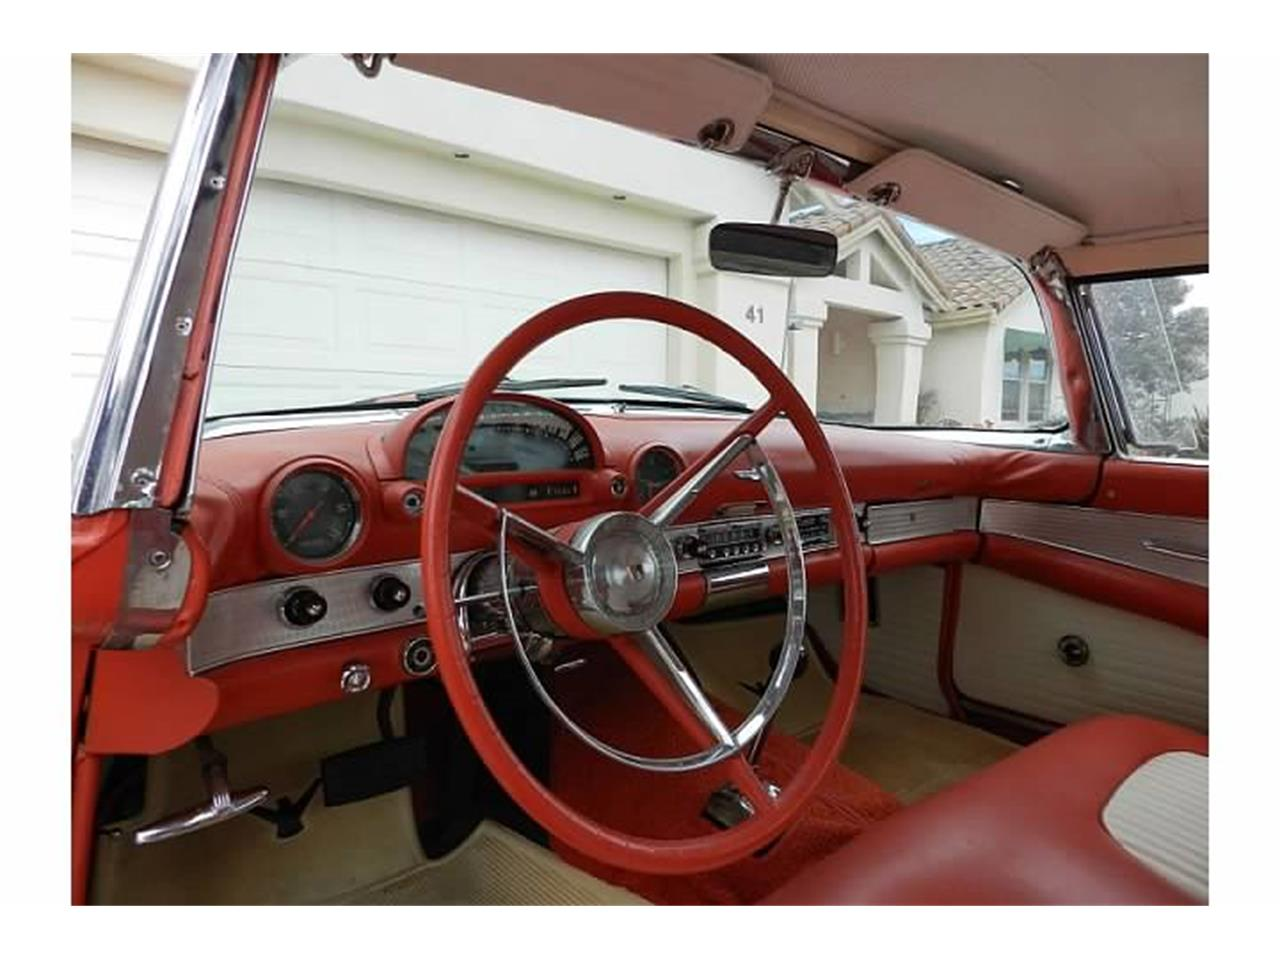 Large Picture of 1956 Ford Thunderbird located in Hollister California - $39,800.00 - C1JY